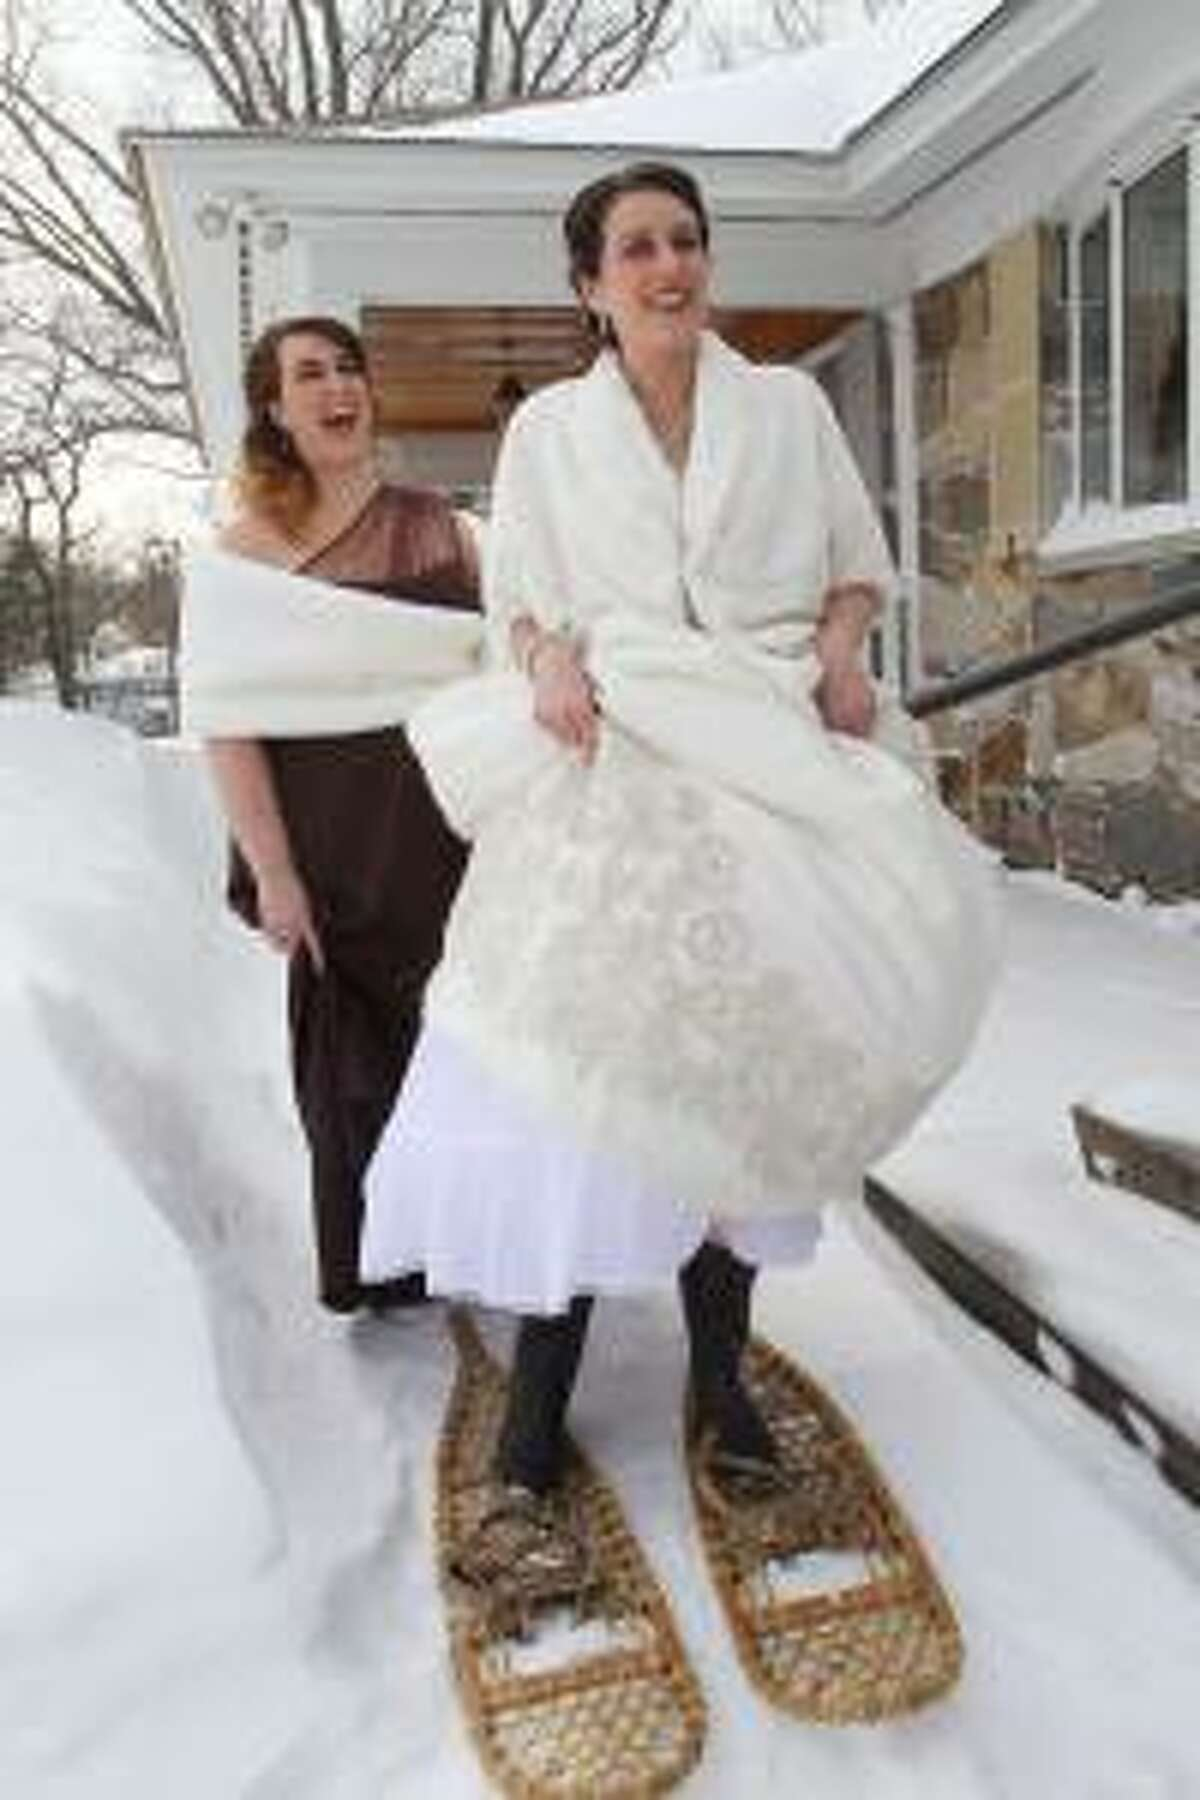 Bride Kathryn Jussaume of Lowell, with her sister and maid of honor Adrianne Richard of Lowell, left, poses in snowshoes as Adrianne's husband takes a photo in front of her parents' house in Lowell. They were headed to her wedding in North Andover, at the end of a blizzard which dropped two feet of snow in Massachusetts. (SUN/Julia Malakie)